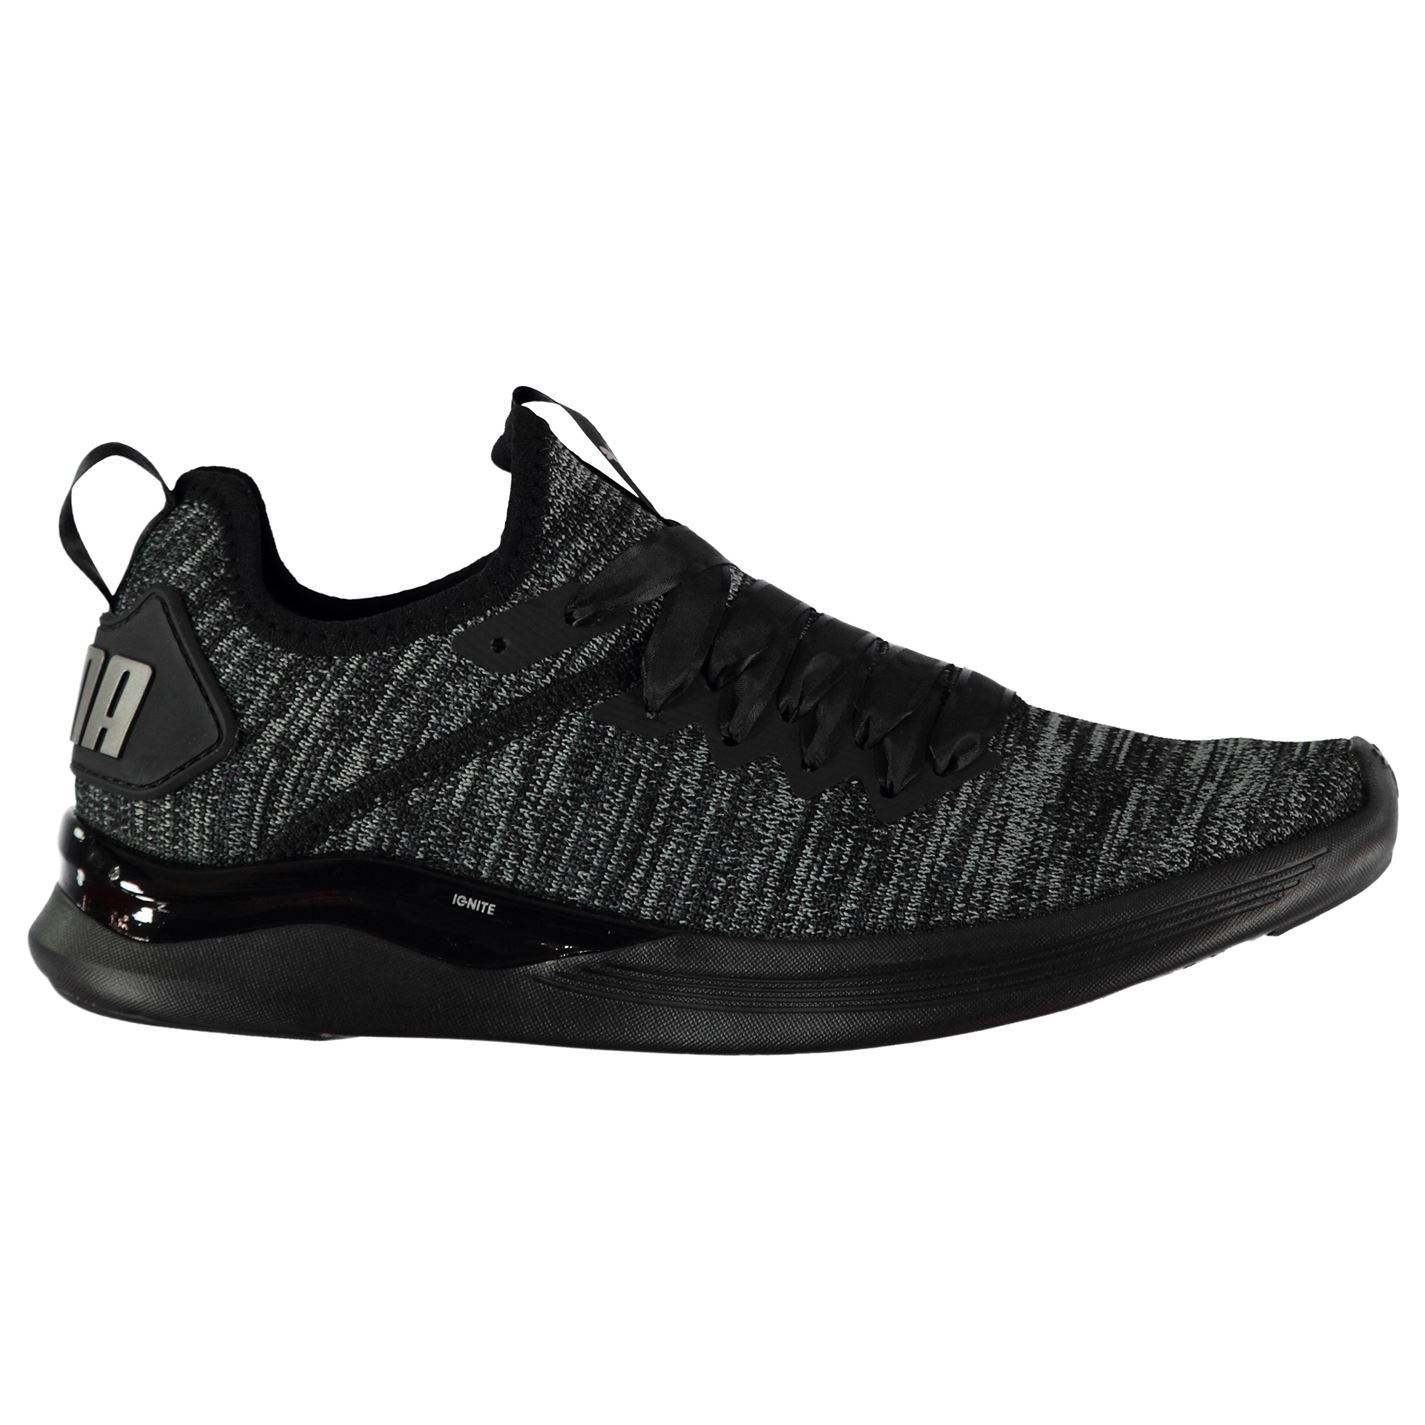 Details about Puma Womens Ignite Flash Satin Trainers Runners Knit Knitted 1e659e3e4